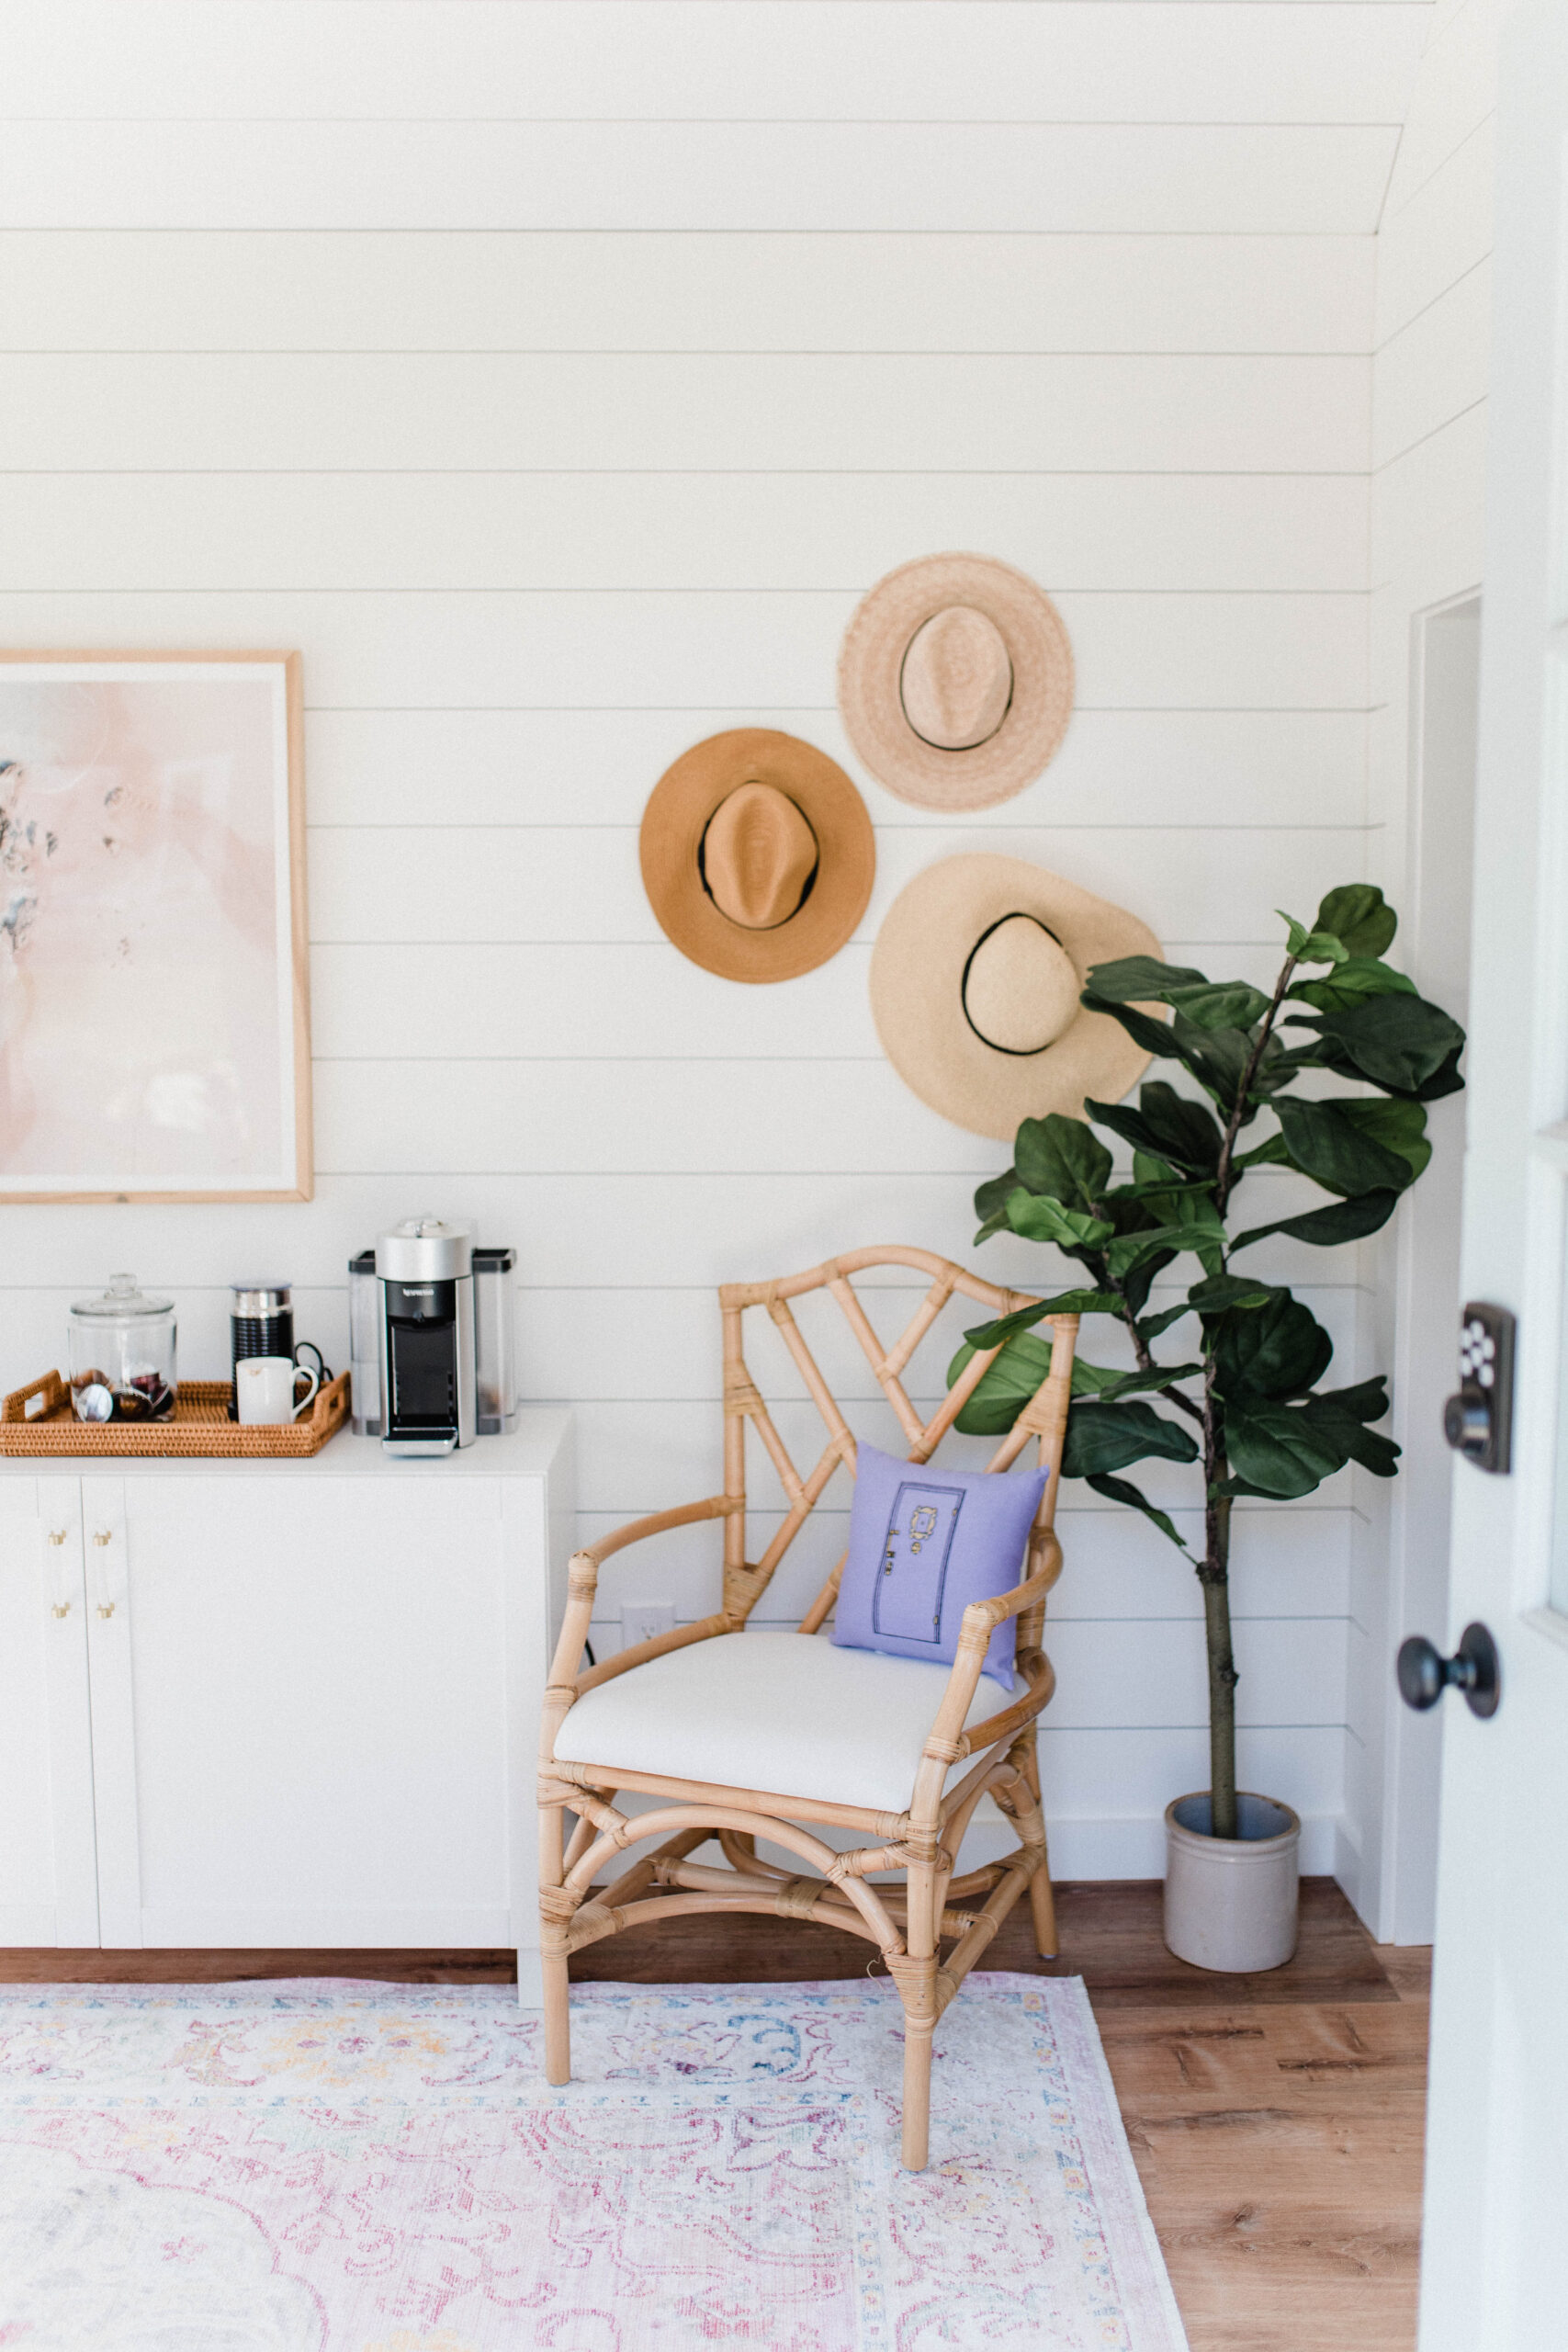 Connecticut life and style blogger Lauren McBride shares her Shed Shed Office Space and how it transformed from a run down shed to an inspirational office.